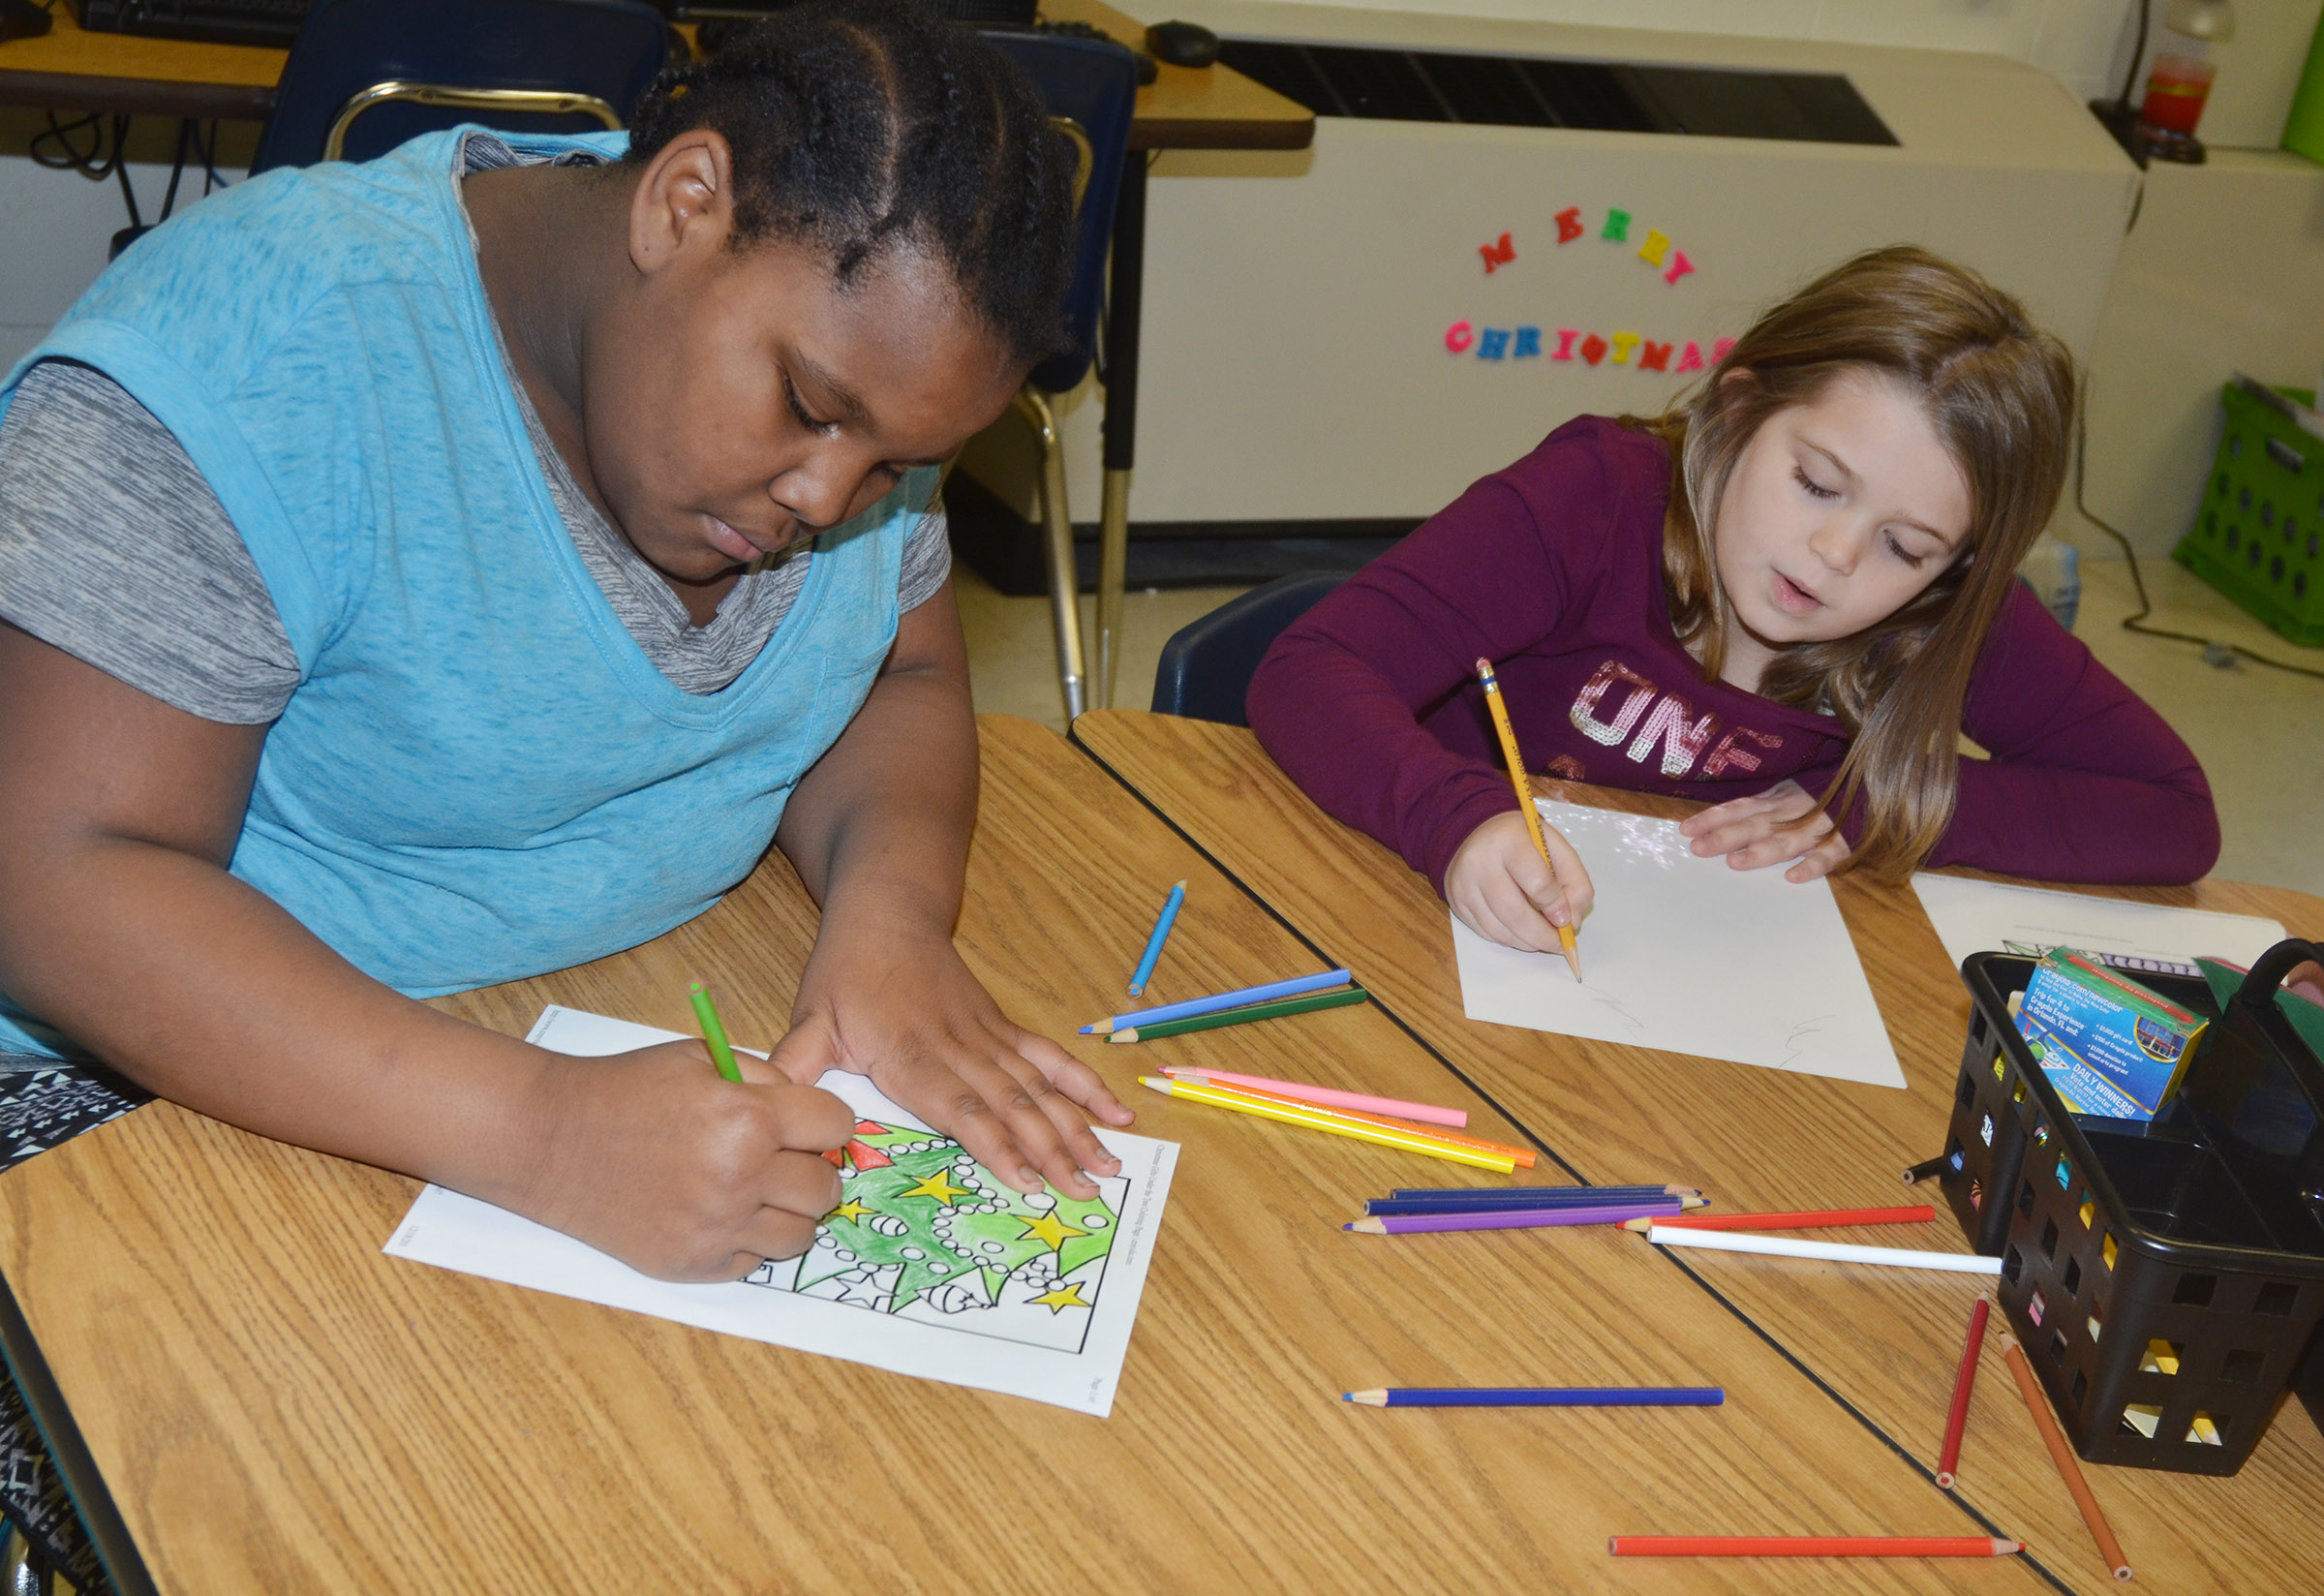 CES fourth-graders Talaysia Daniels, at left, and Chyanne Christie enjoy coloring a Christmas scene.